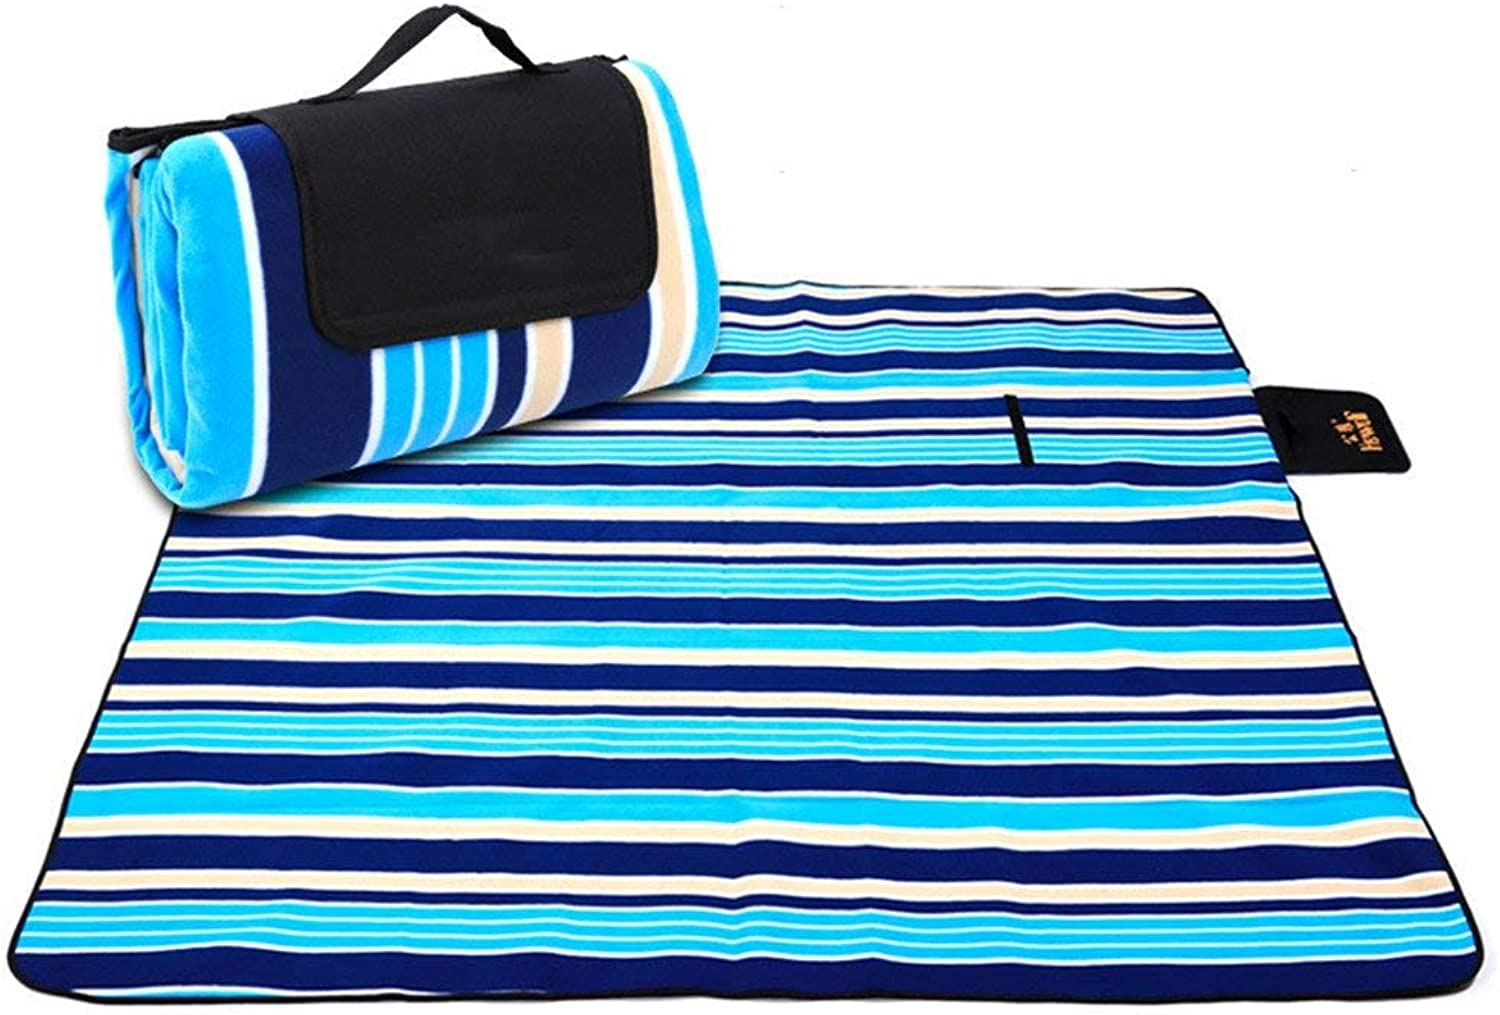 Foldable Beach Mat, Thickening, Damp Proof, Outdoor Folding Lawn, Oxford Cloth Cushion, Picnic Cloth